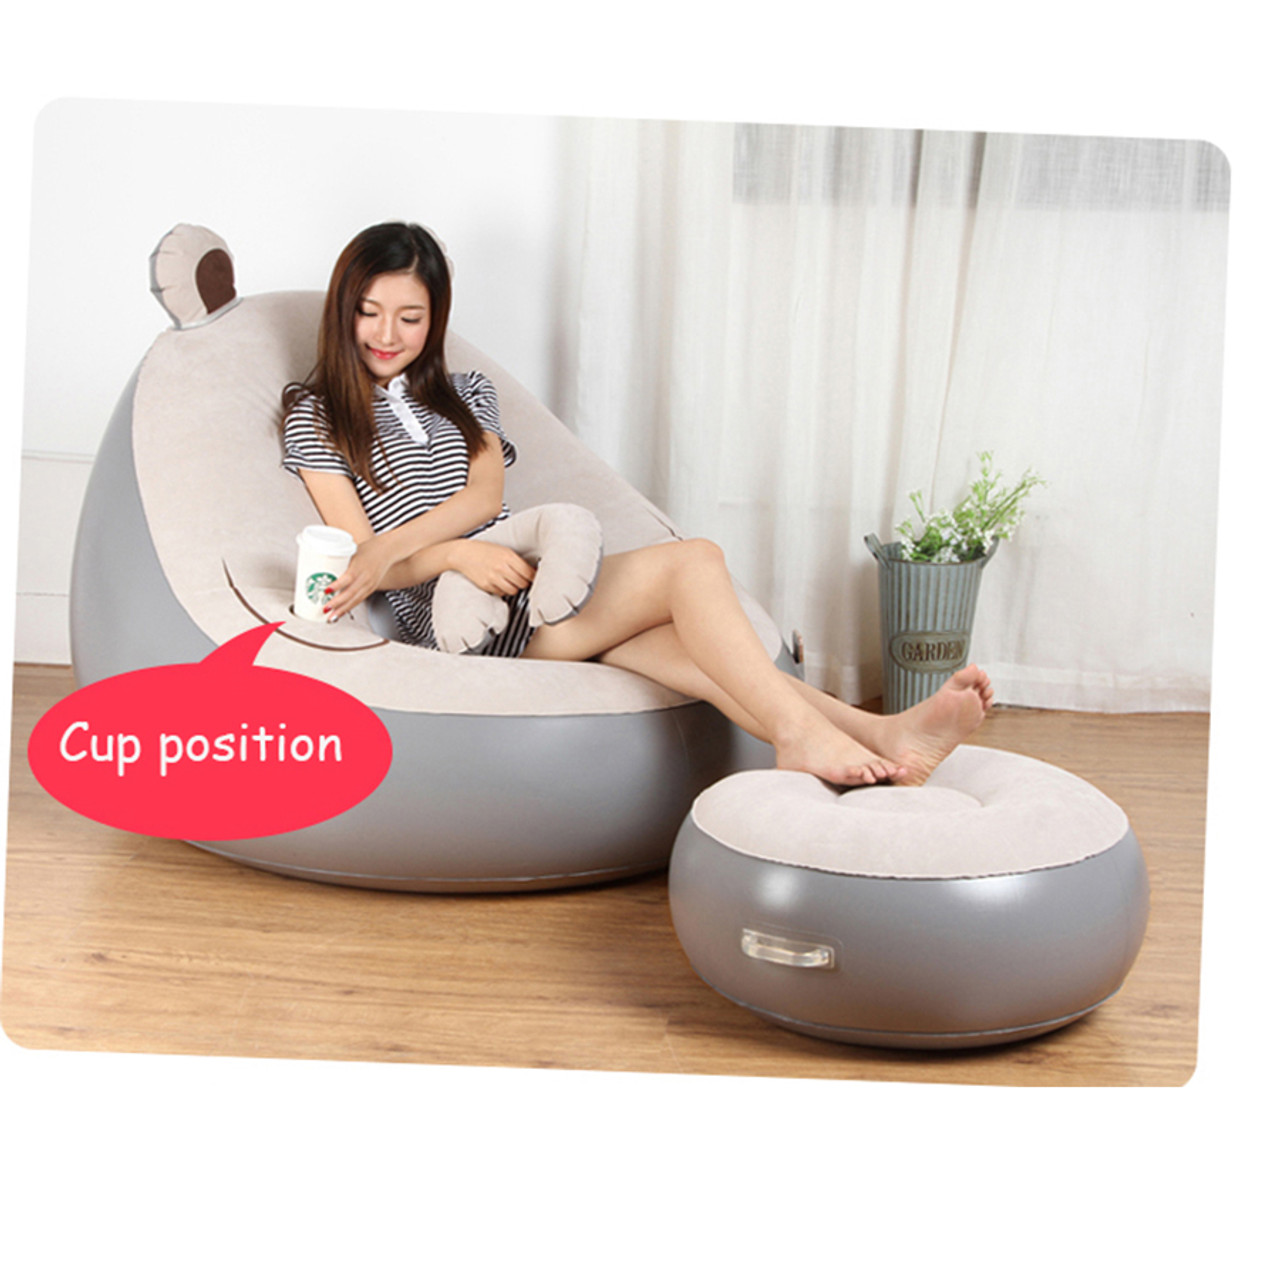 ... Cute Expression Inflatable Bean Bag Sofa Lounge Chair and Ottoman Air Couch Sillones Puff Lazy Sofa ...  sc 1 st  OnshopDeals.Com & Cute Expression Inflatable Bean Bag Sofa Lounge Chair and Ottoman ...